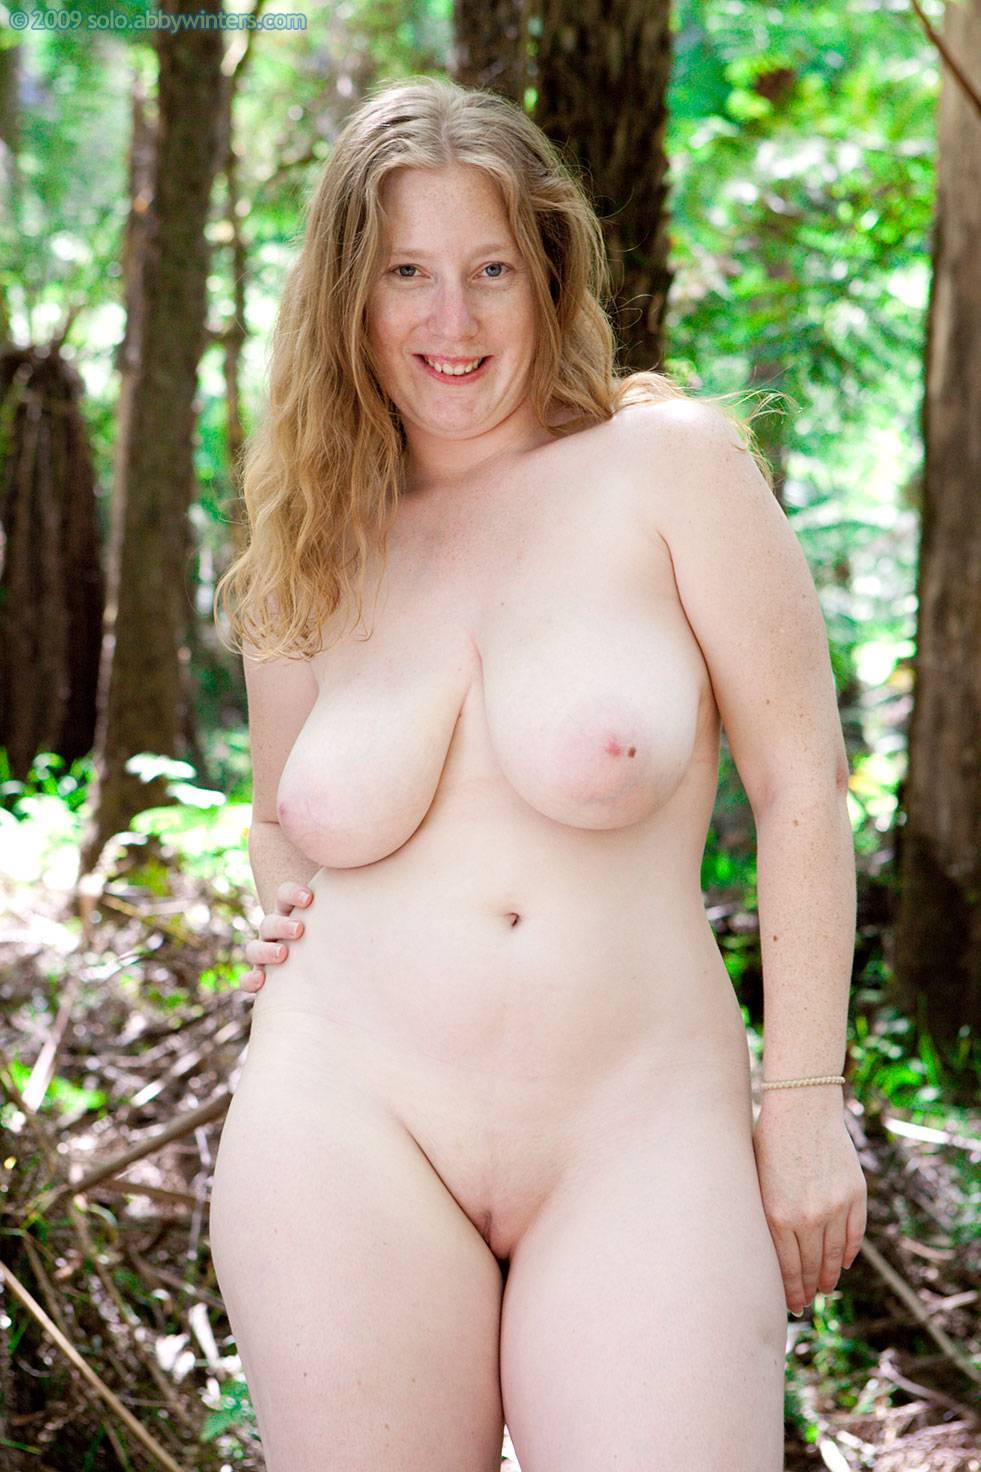 Amateur nude pictures of plus size women